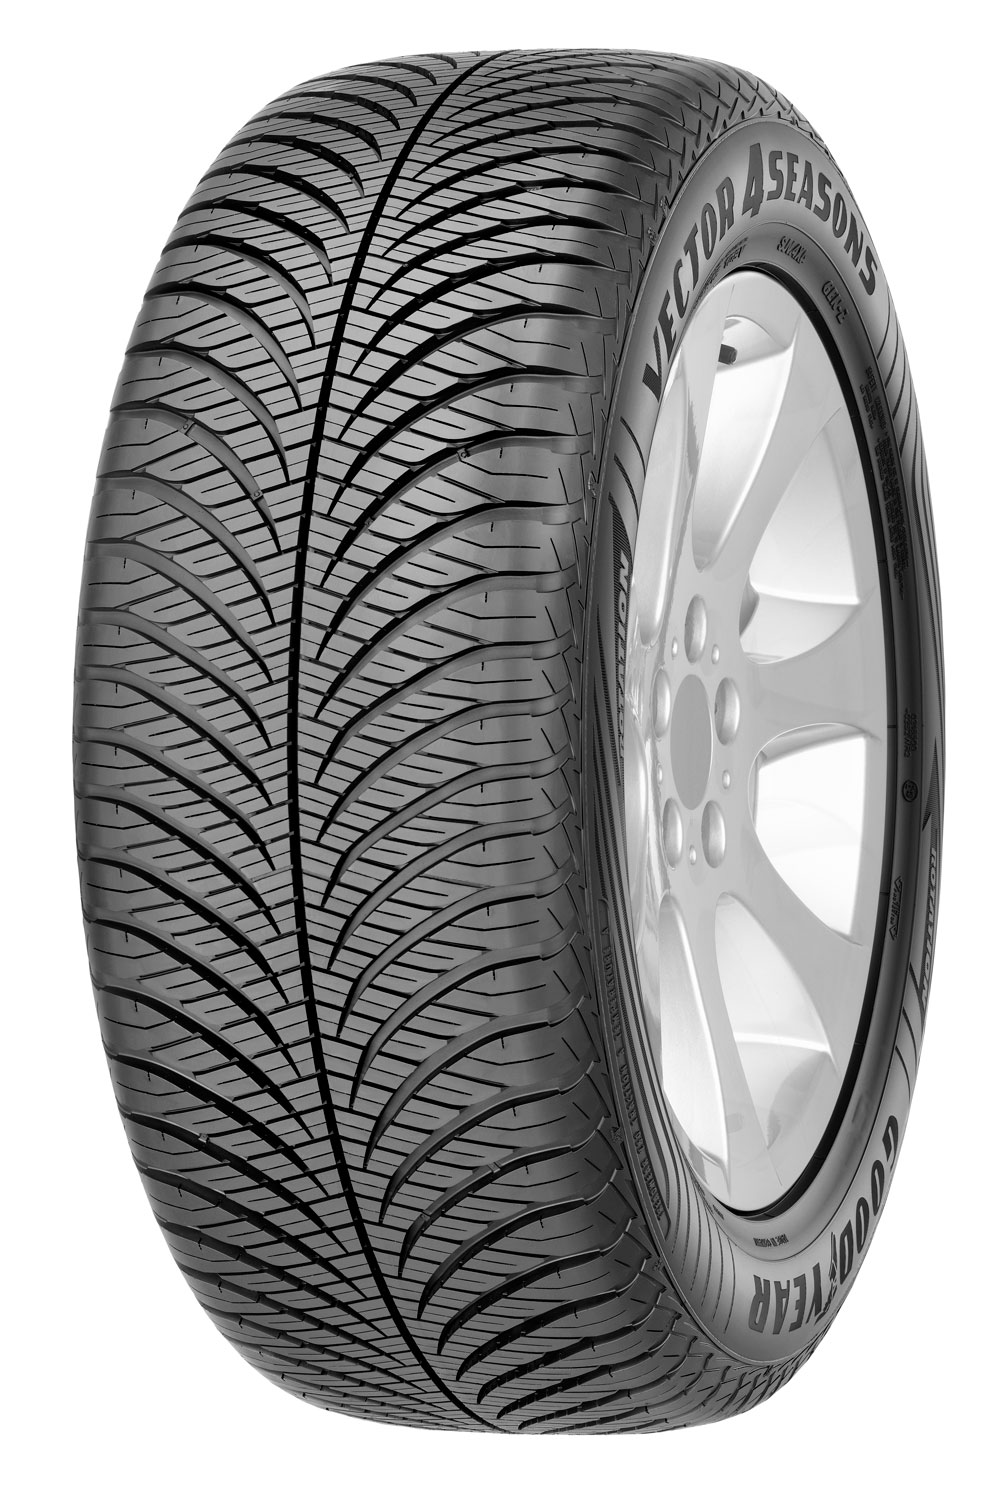 Goodyear Vector 4 seasons  235/55 R17